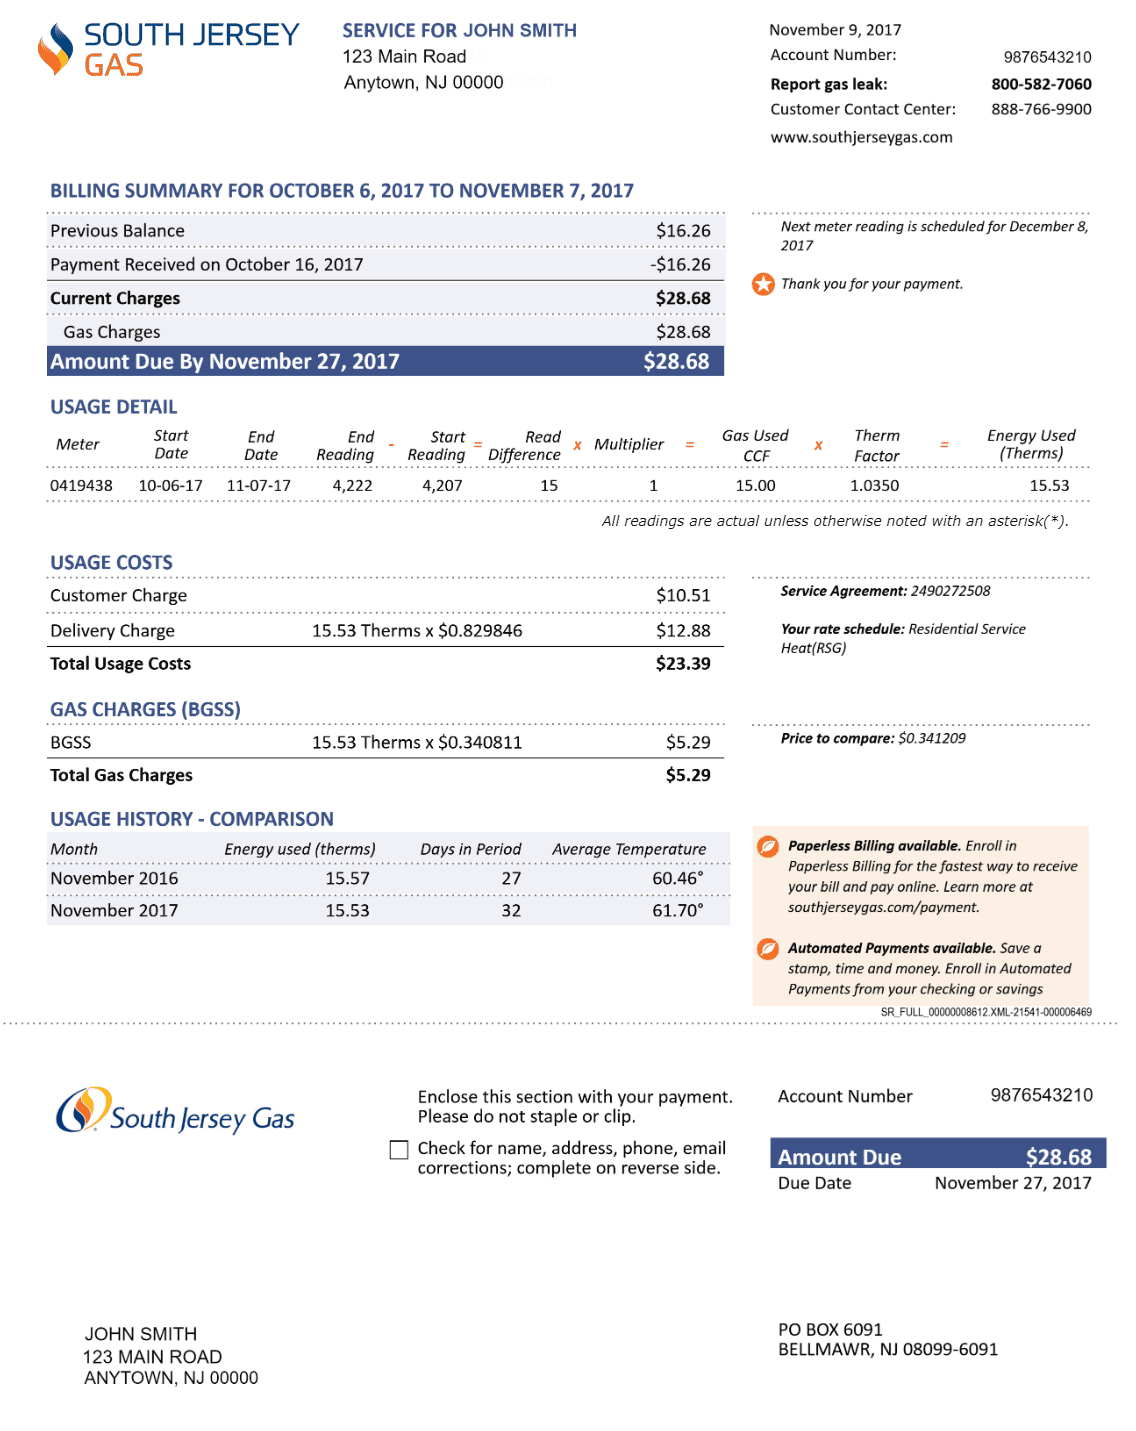 South Jersey Gas - Understand Your Bill